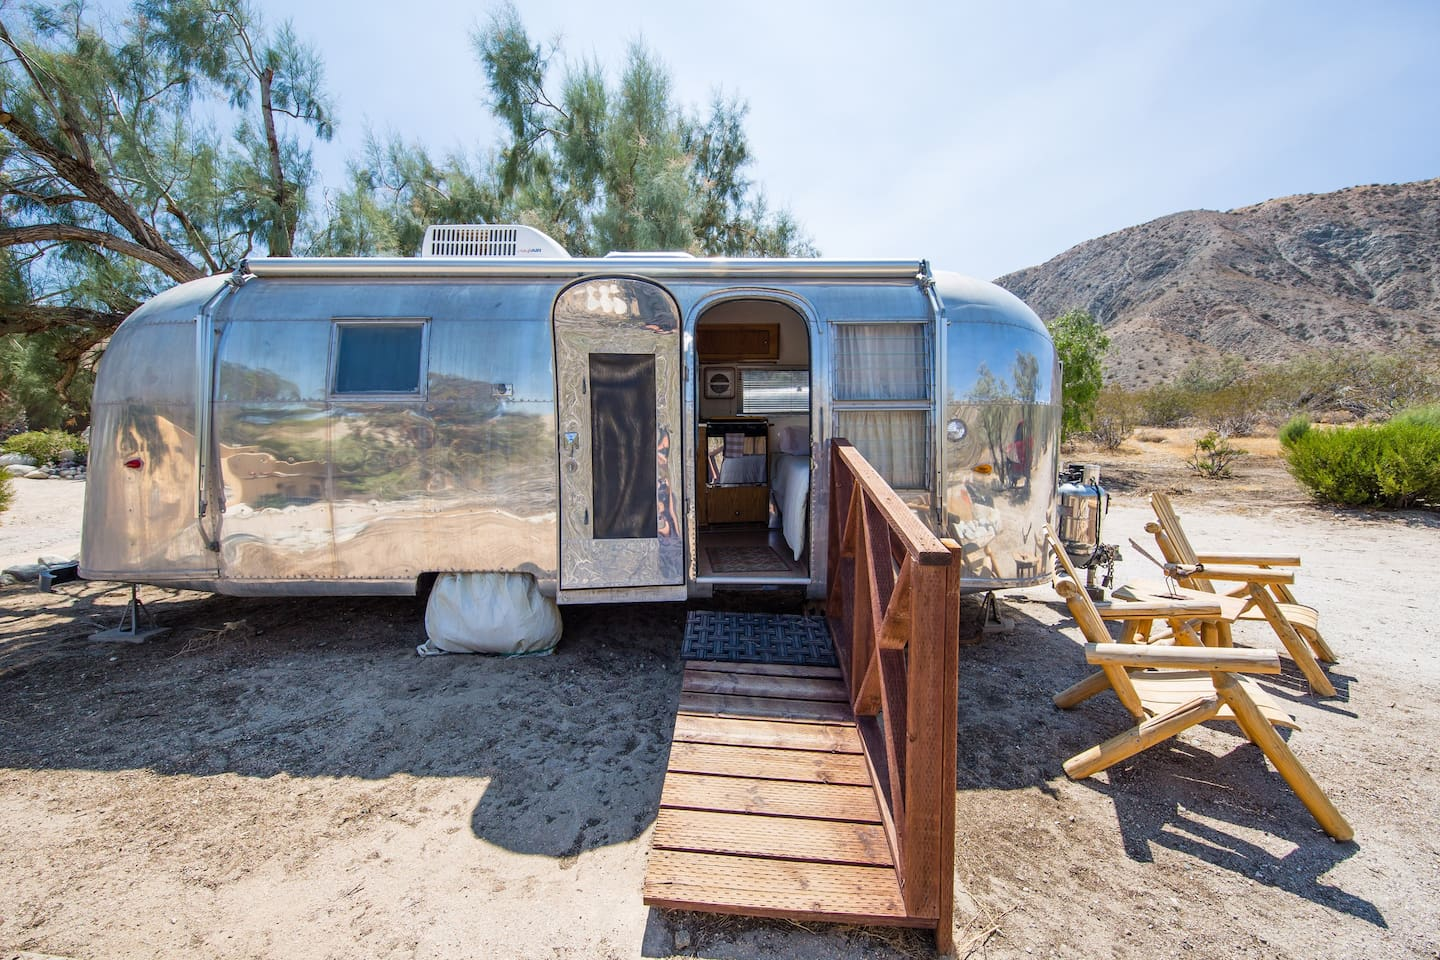 Stay in the vintage Airstream at Casa de los Desperados